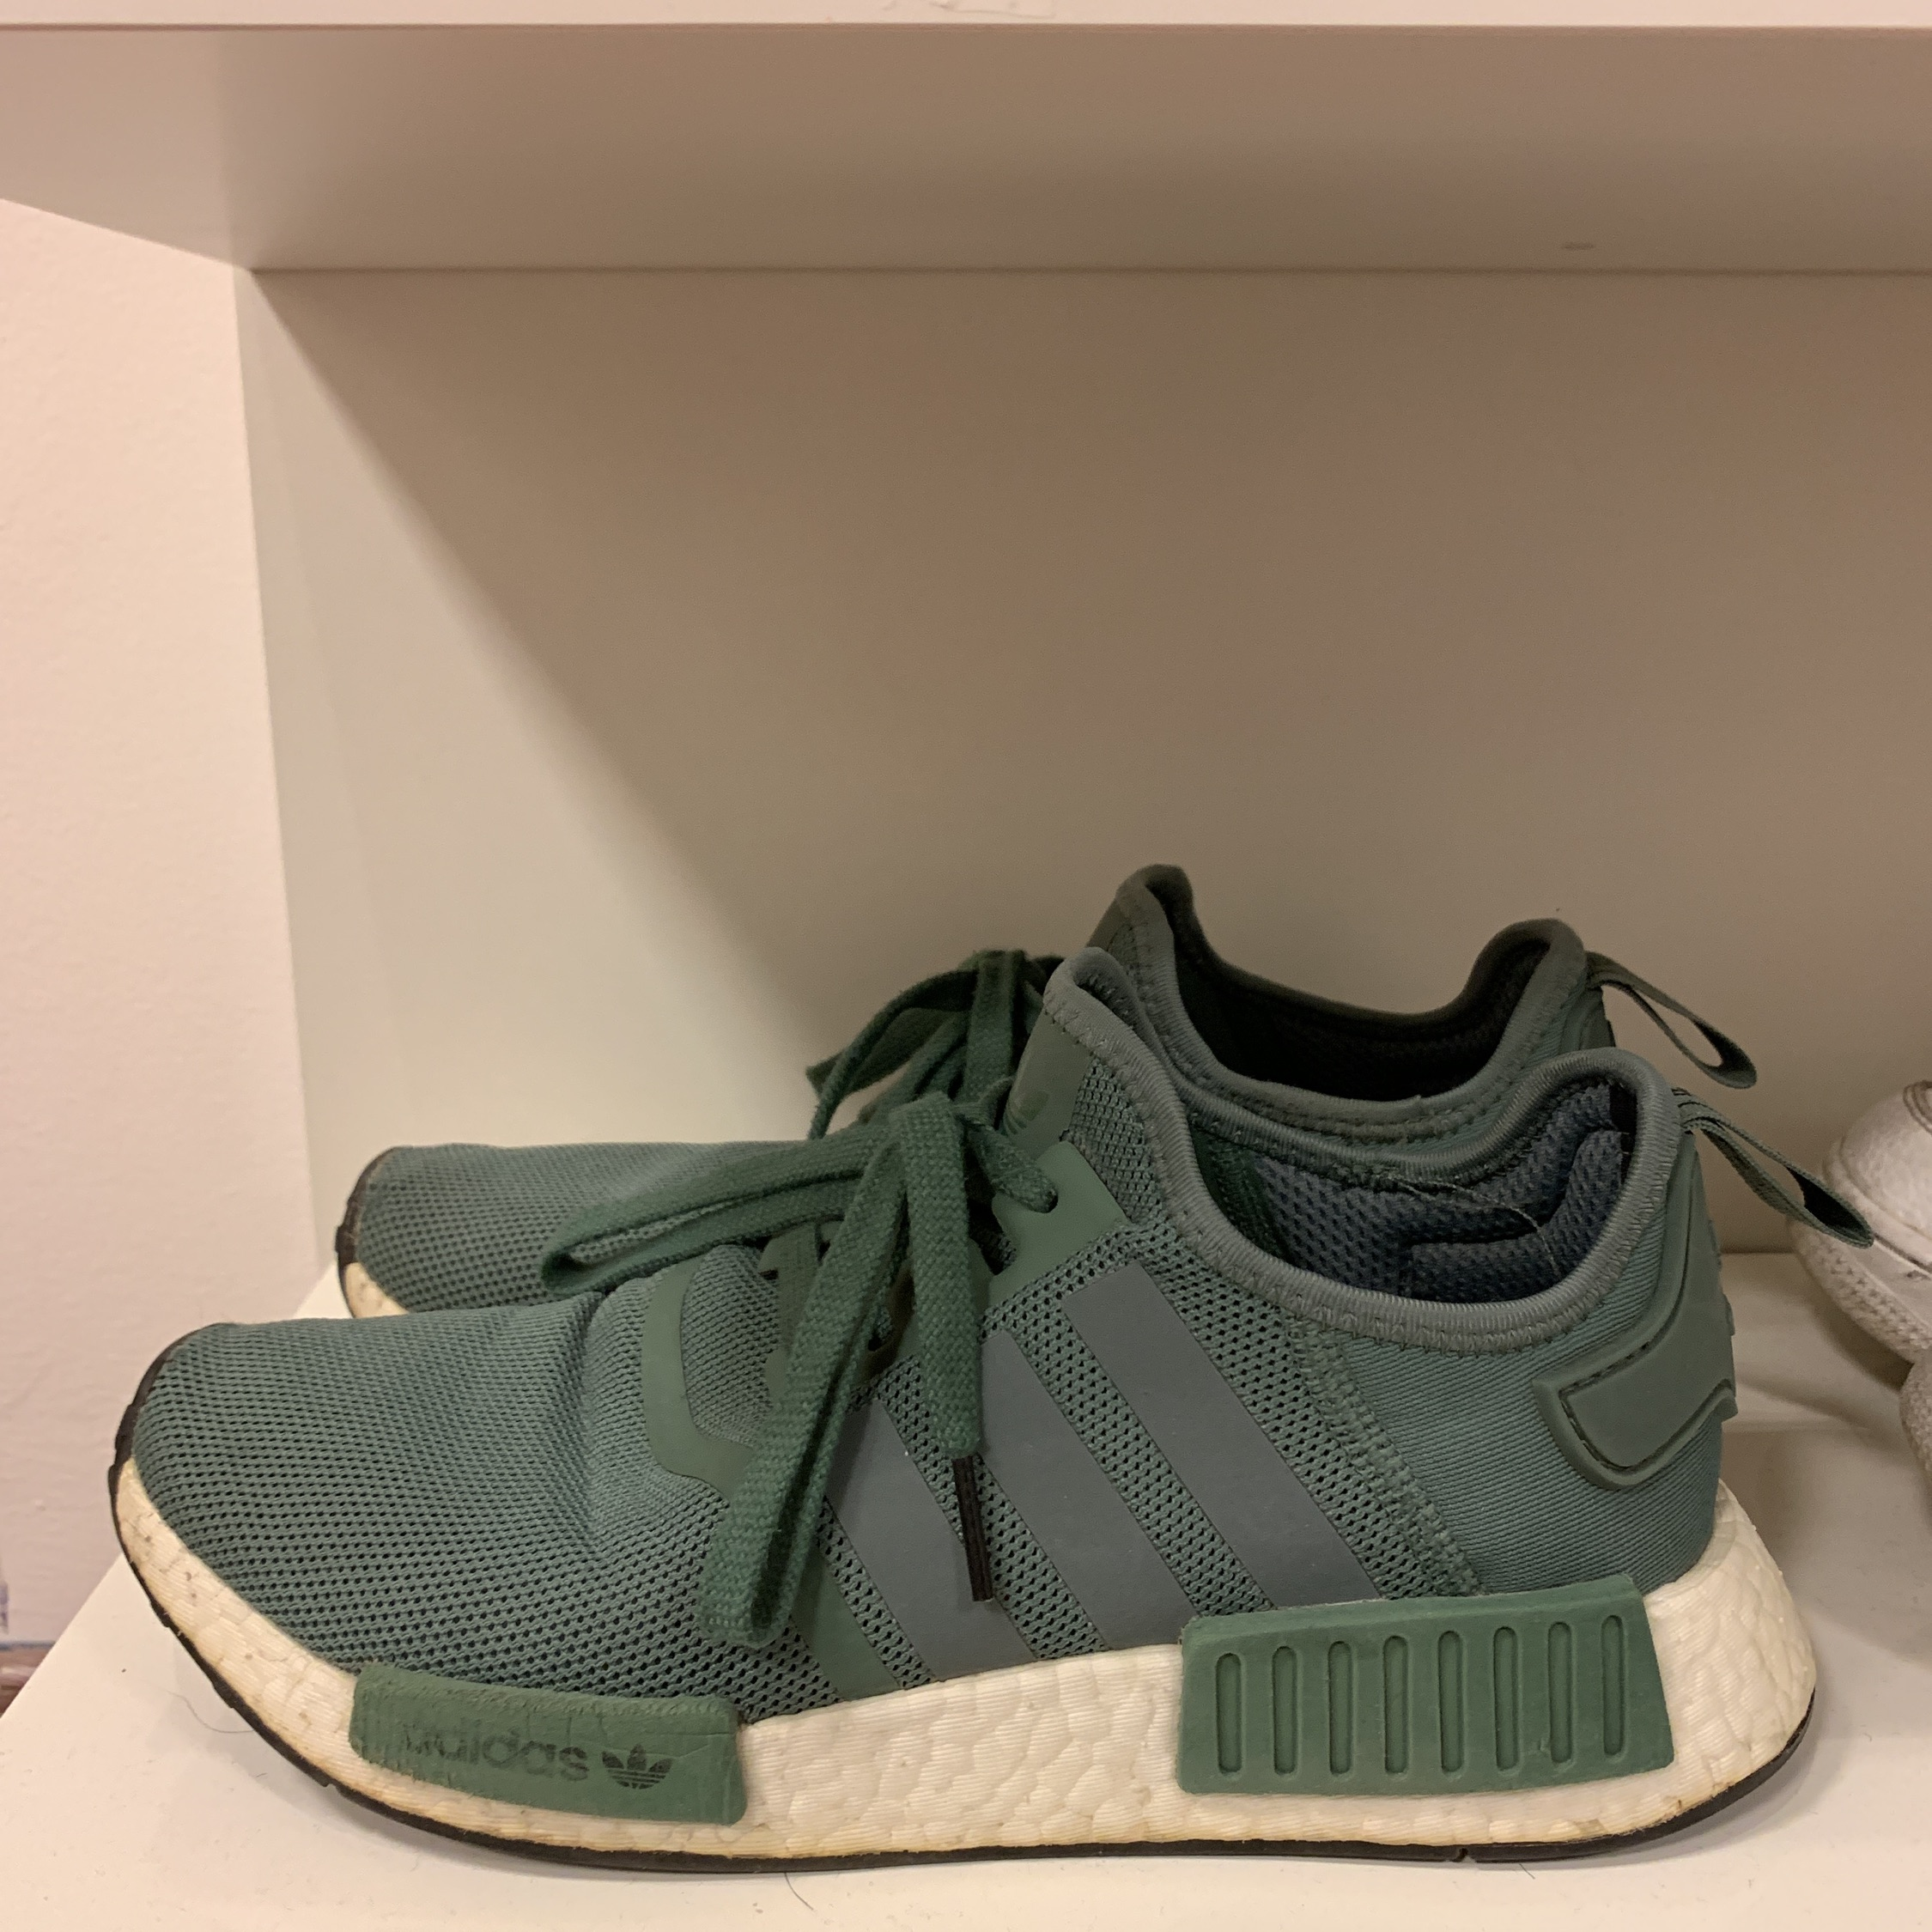 buy online 76d93 02bb3 Adidas Nmd R1 Green